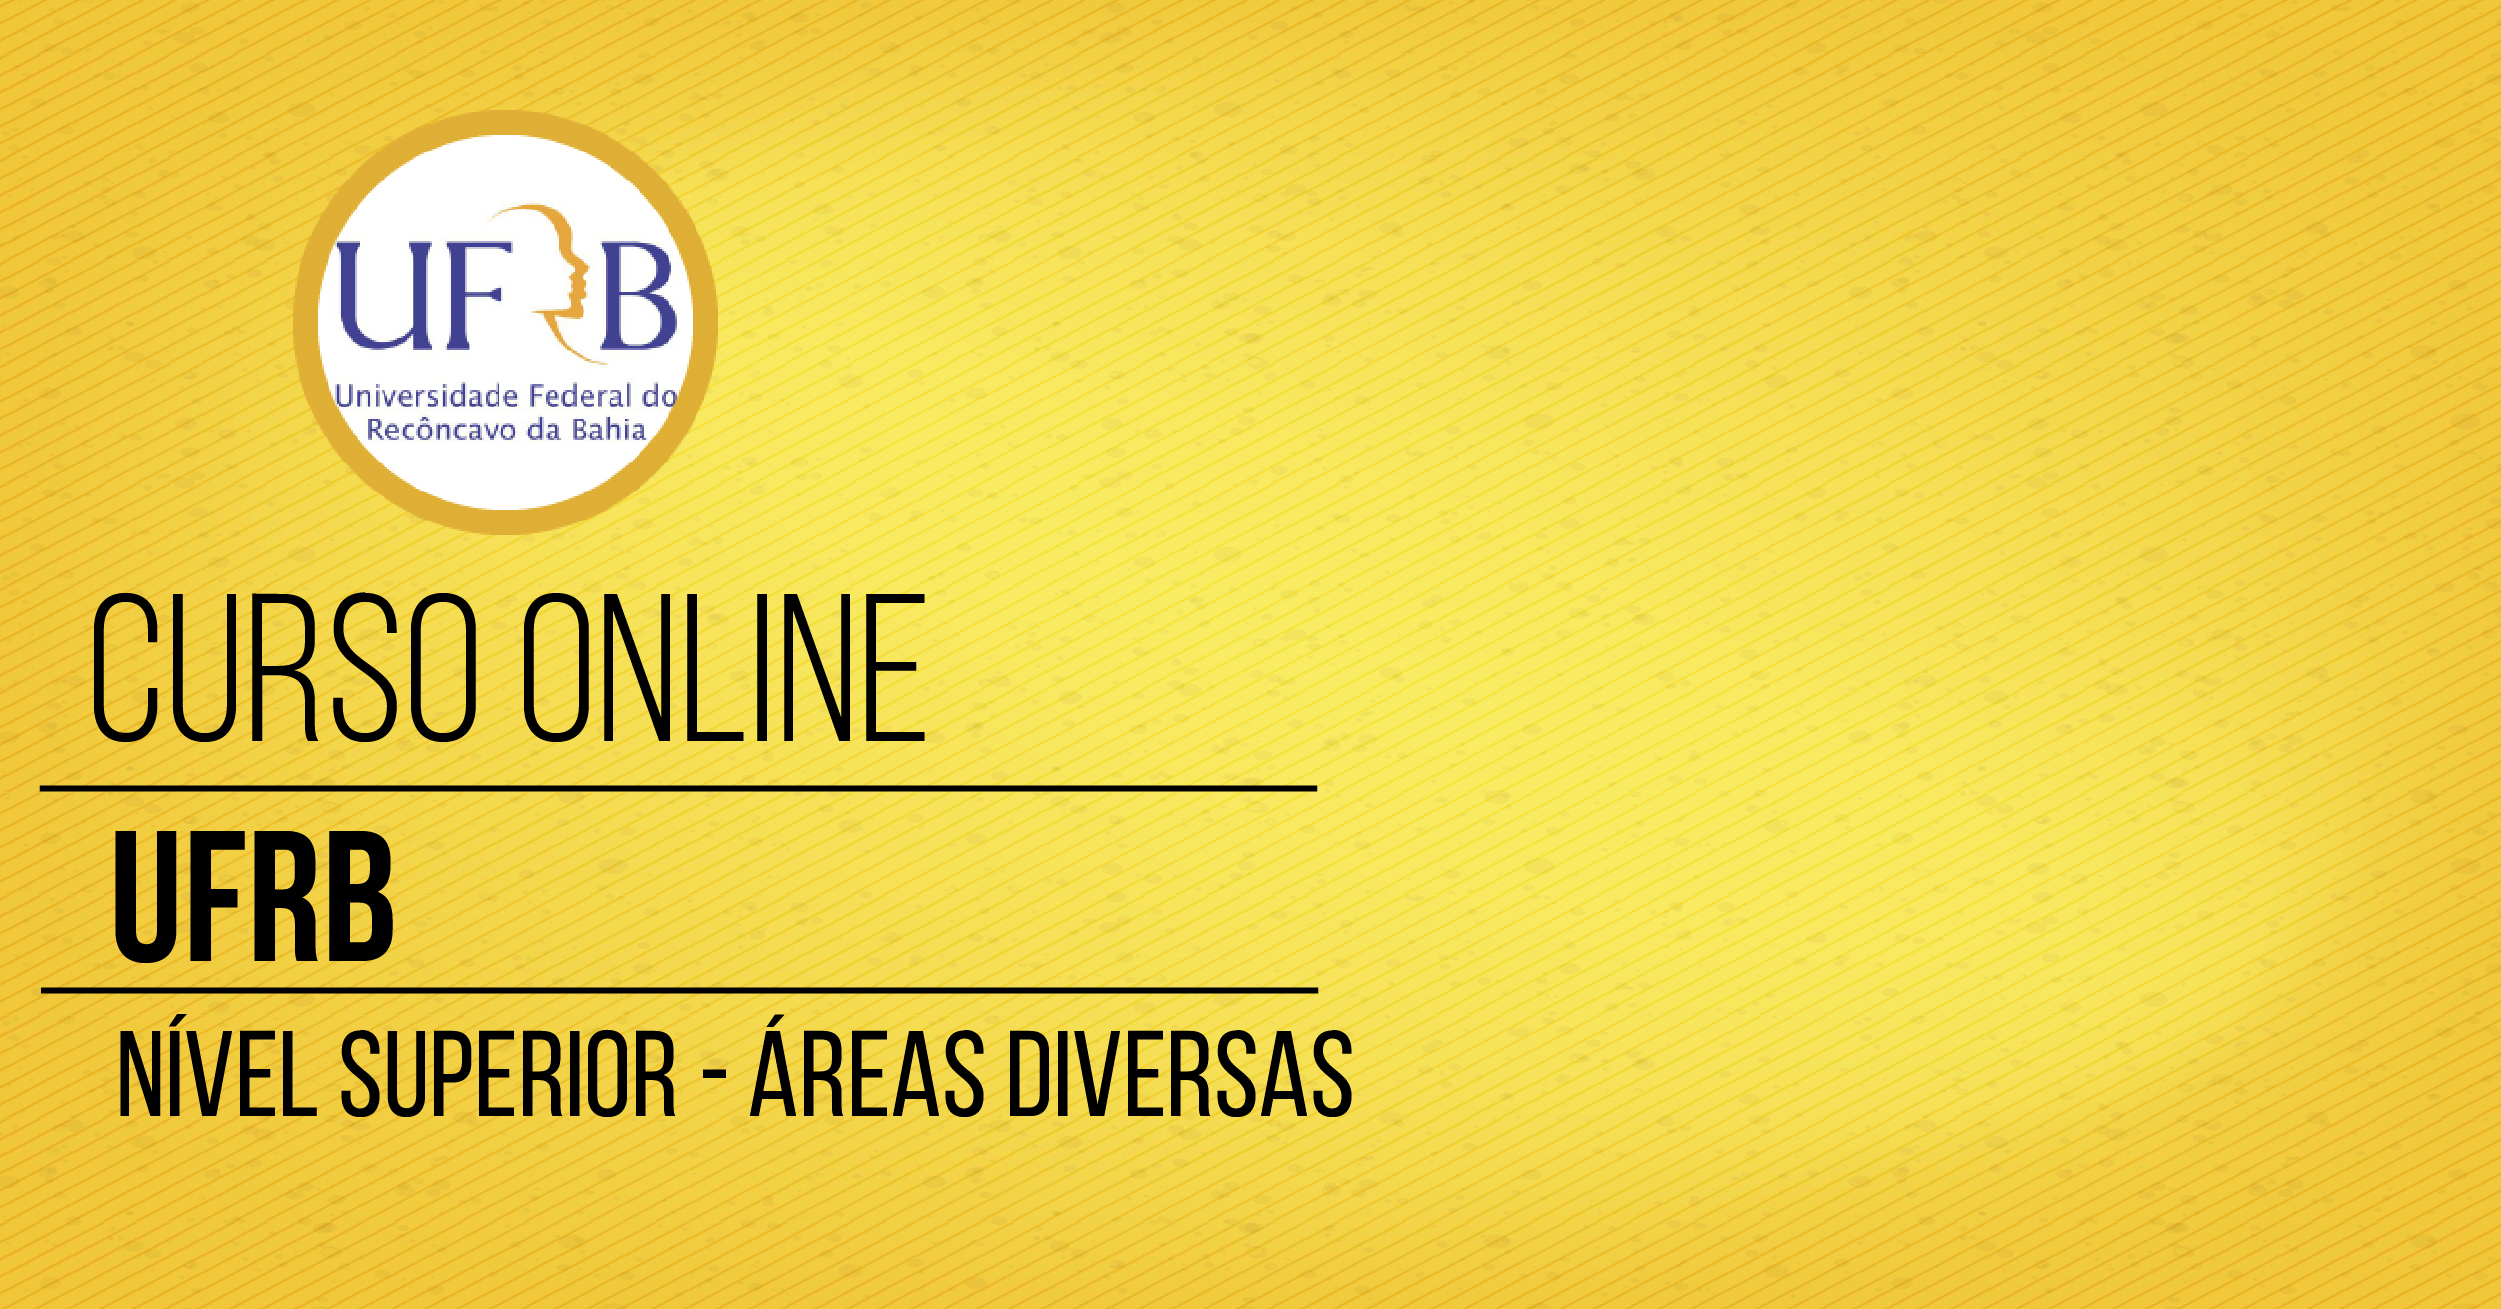 Curso - Universidade Federal do Recôncavo da Bahia - UFRB - Superior - Diversas Áreas